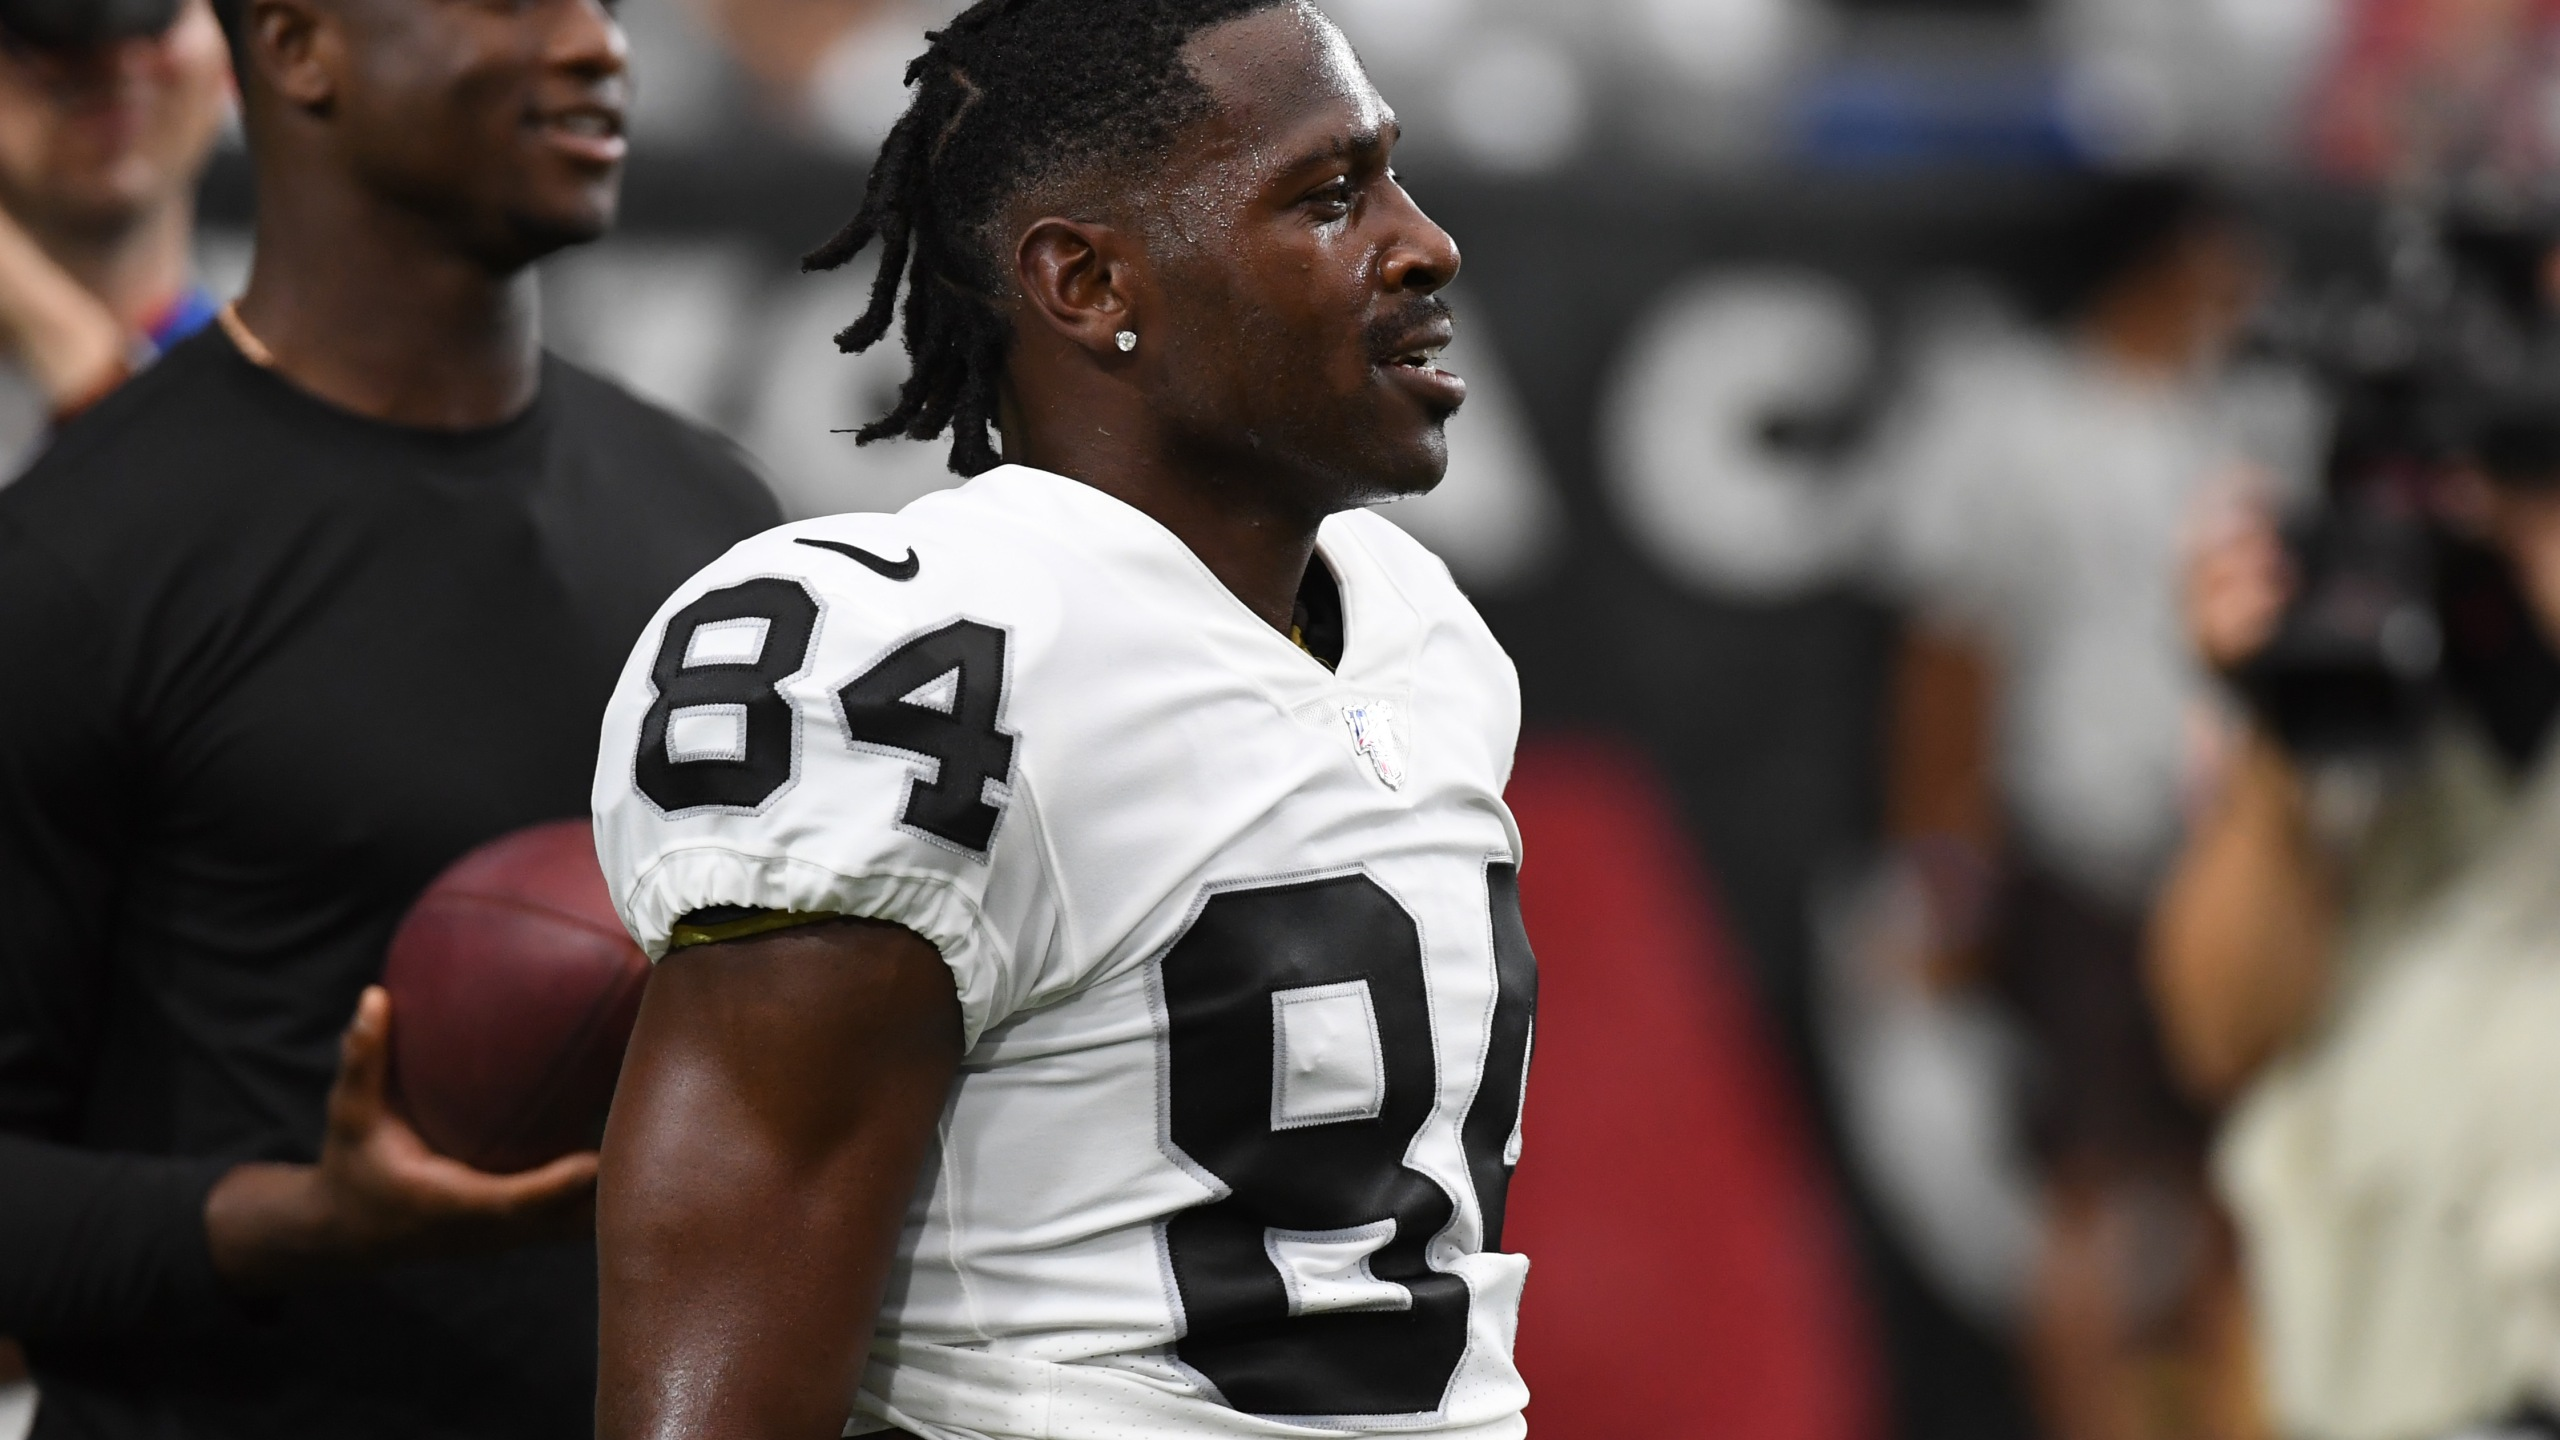 Antonio Brown warms up prior to an NFL preseason game against the Arizona Cardinals at State Farm Stadium on Aug. 15, 2019 in Glendale, Arizona. (Credit: Norm Hall/Getty Images)